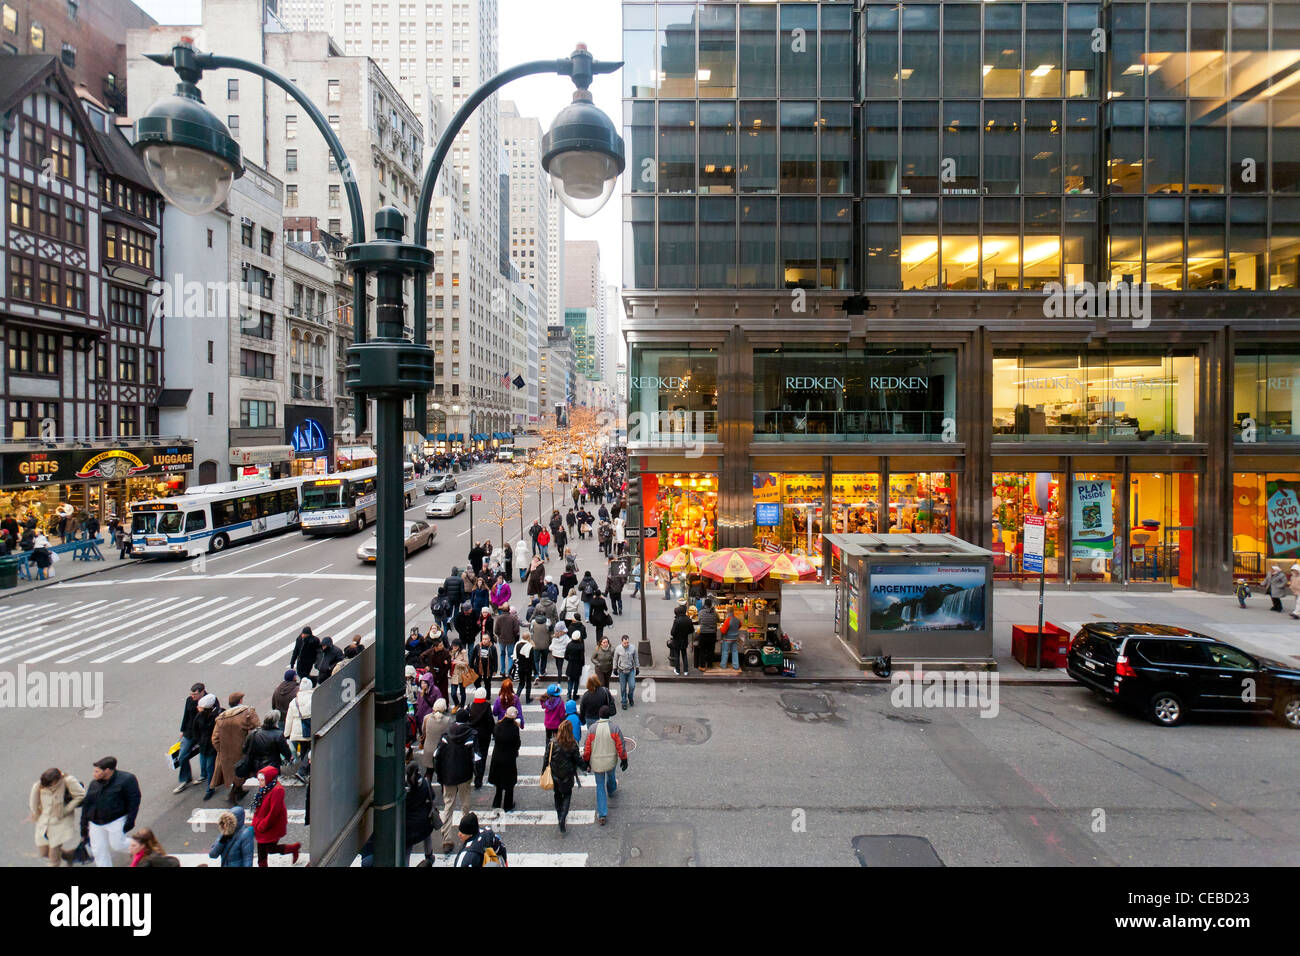 Shoppers and pedestrians walking on Fifth Ave in New York City. - Stock Image